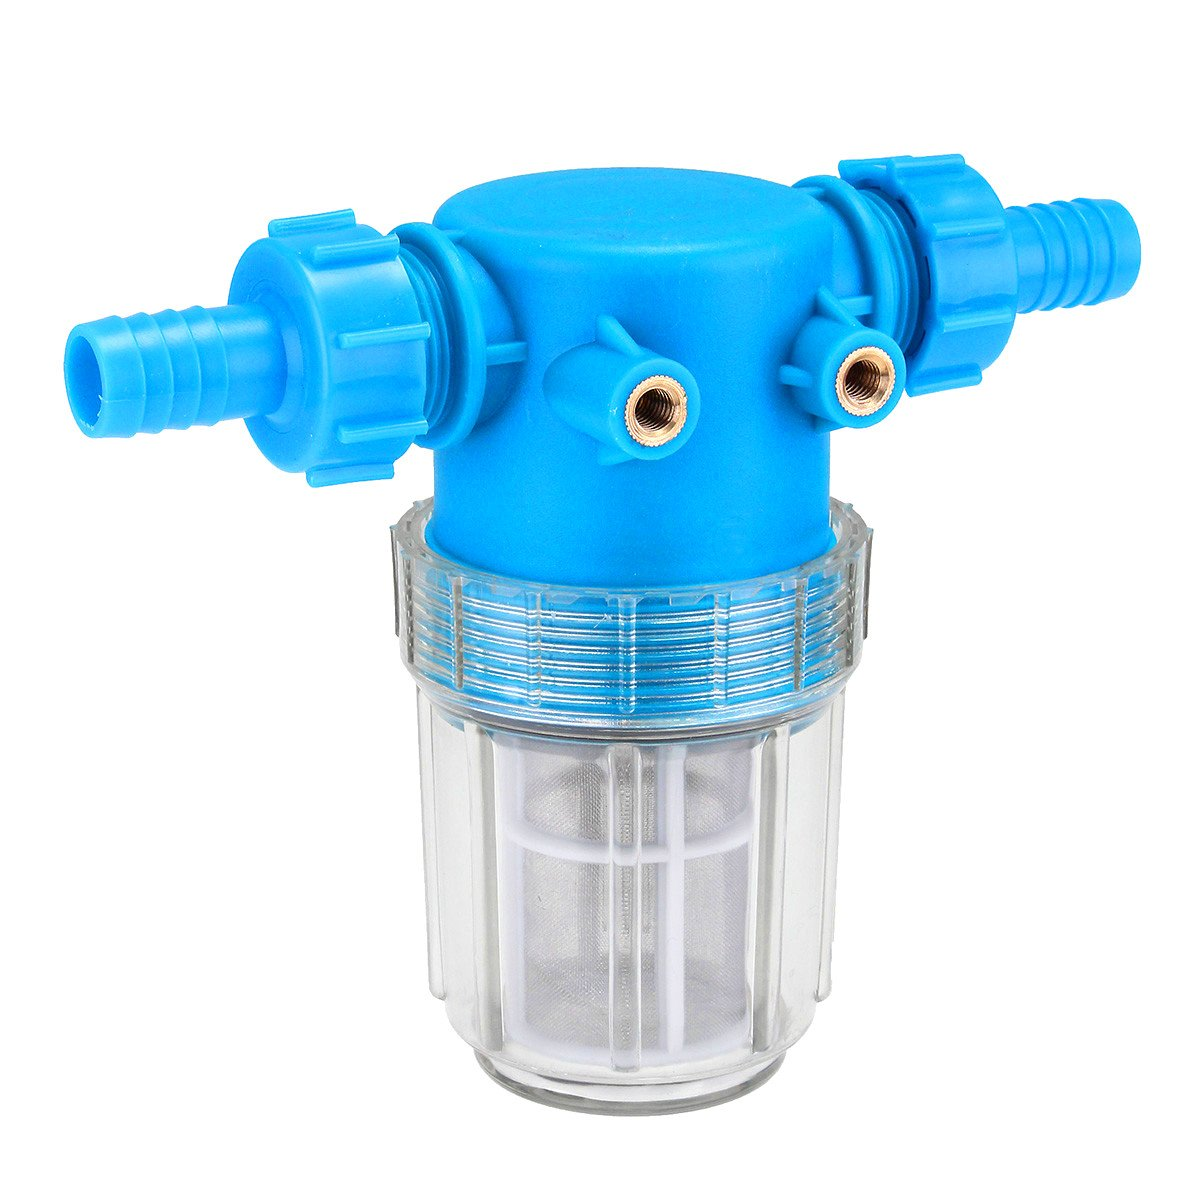 HITSAN 3/4 Inch 20mm Pressure Washer Universal Water Filter In Line Hose Inlet Quick Connector One Piece